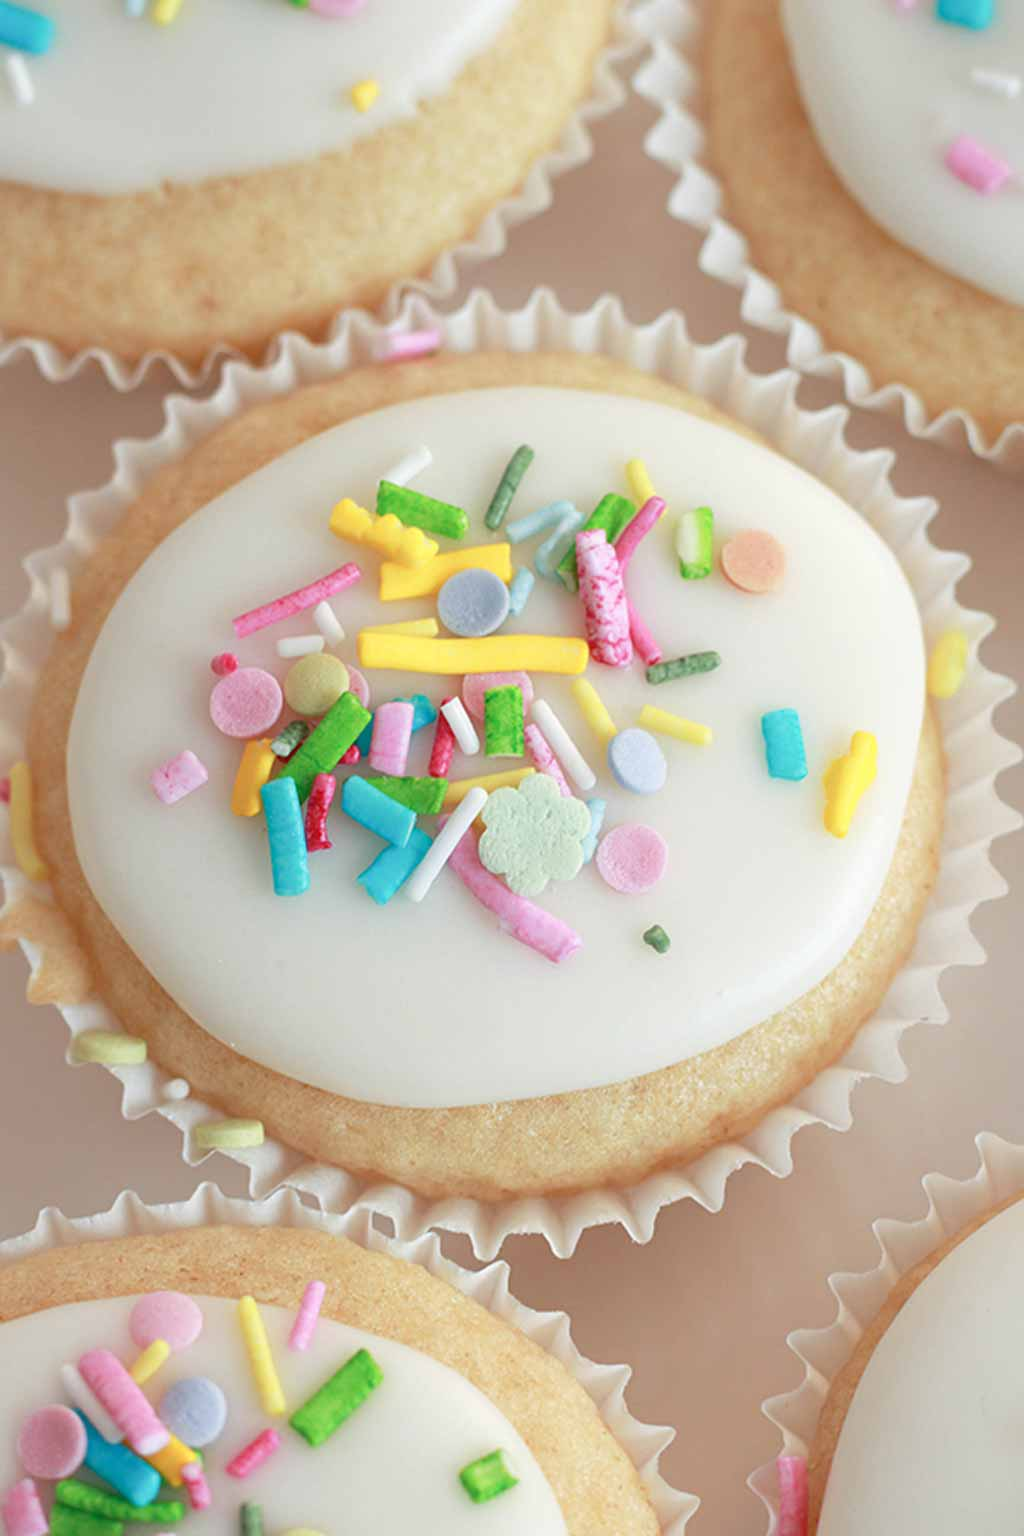 iced cake with sprinkles on top